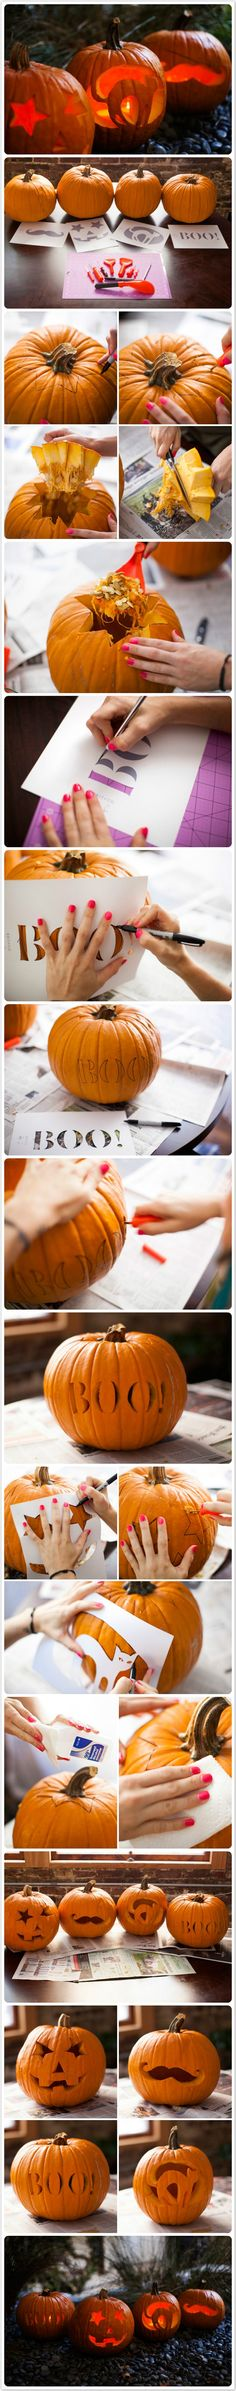 4 Ways to Carve a Pumpkin Click www.faveed.com for more craft ideas! #halloween